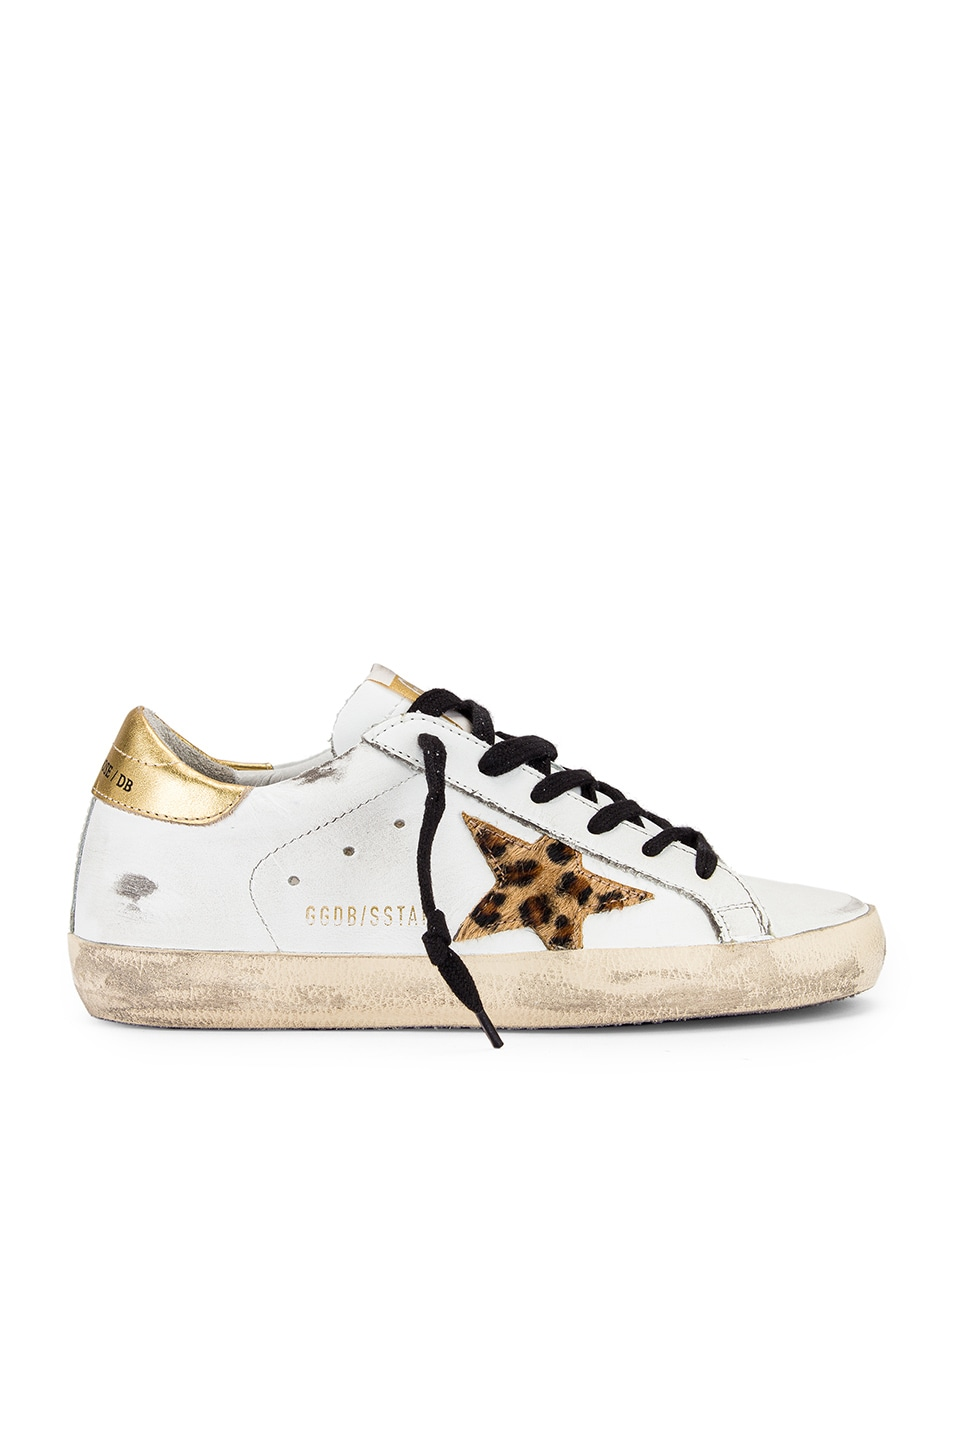 Image 1 of Golden Goose Superstar Sneaker in White Leather & Gold Leopard